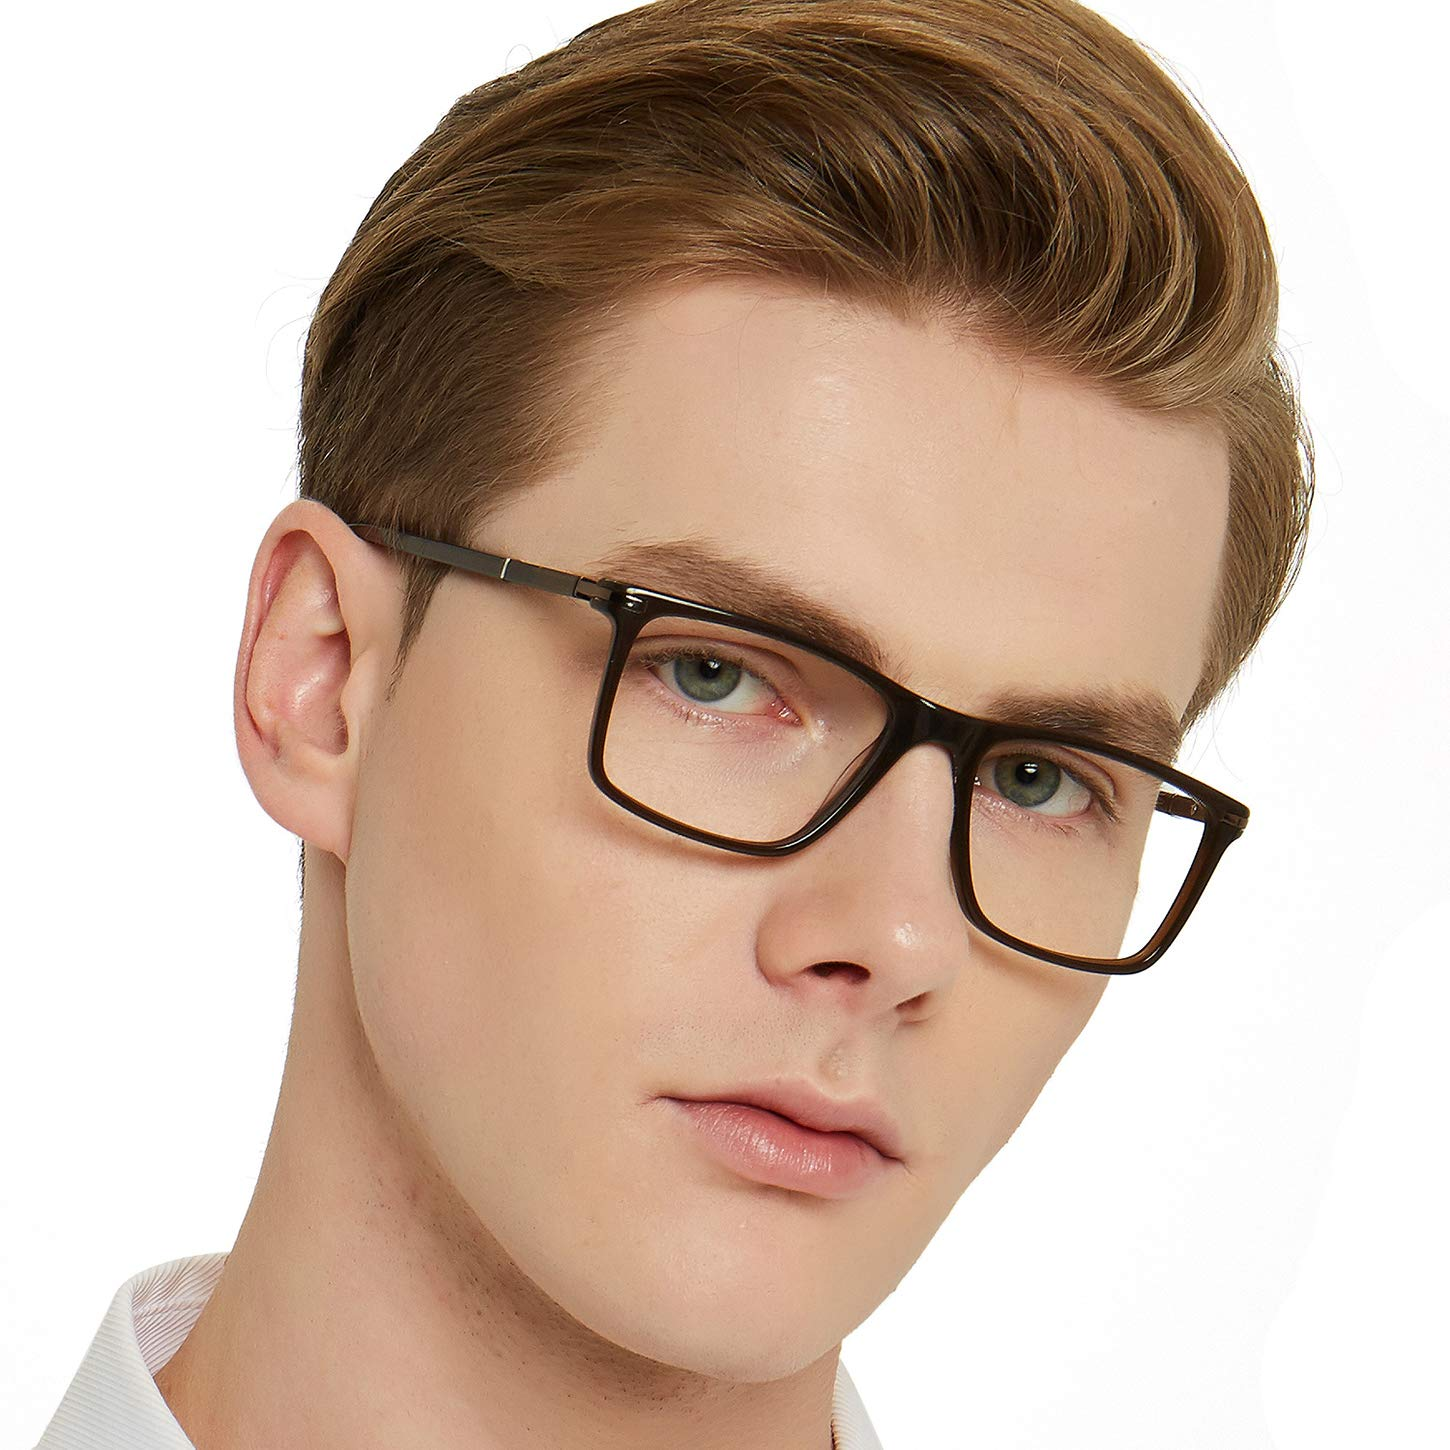 OCCI CHIARI Mens Square Fashion Lightweight Acetate Eyewear Frame with Clear Lens 51mm (Brown)